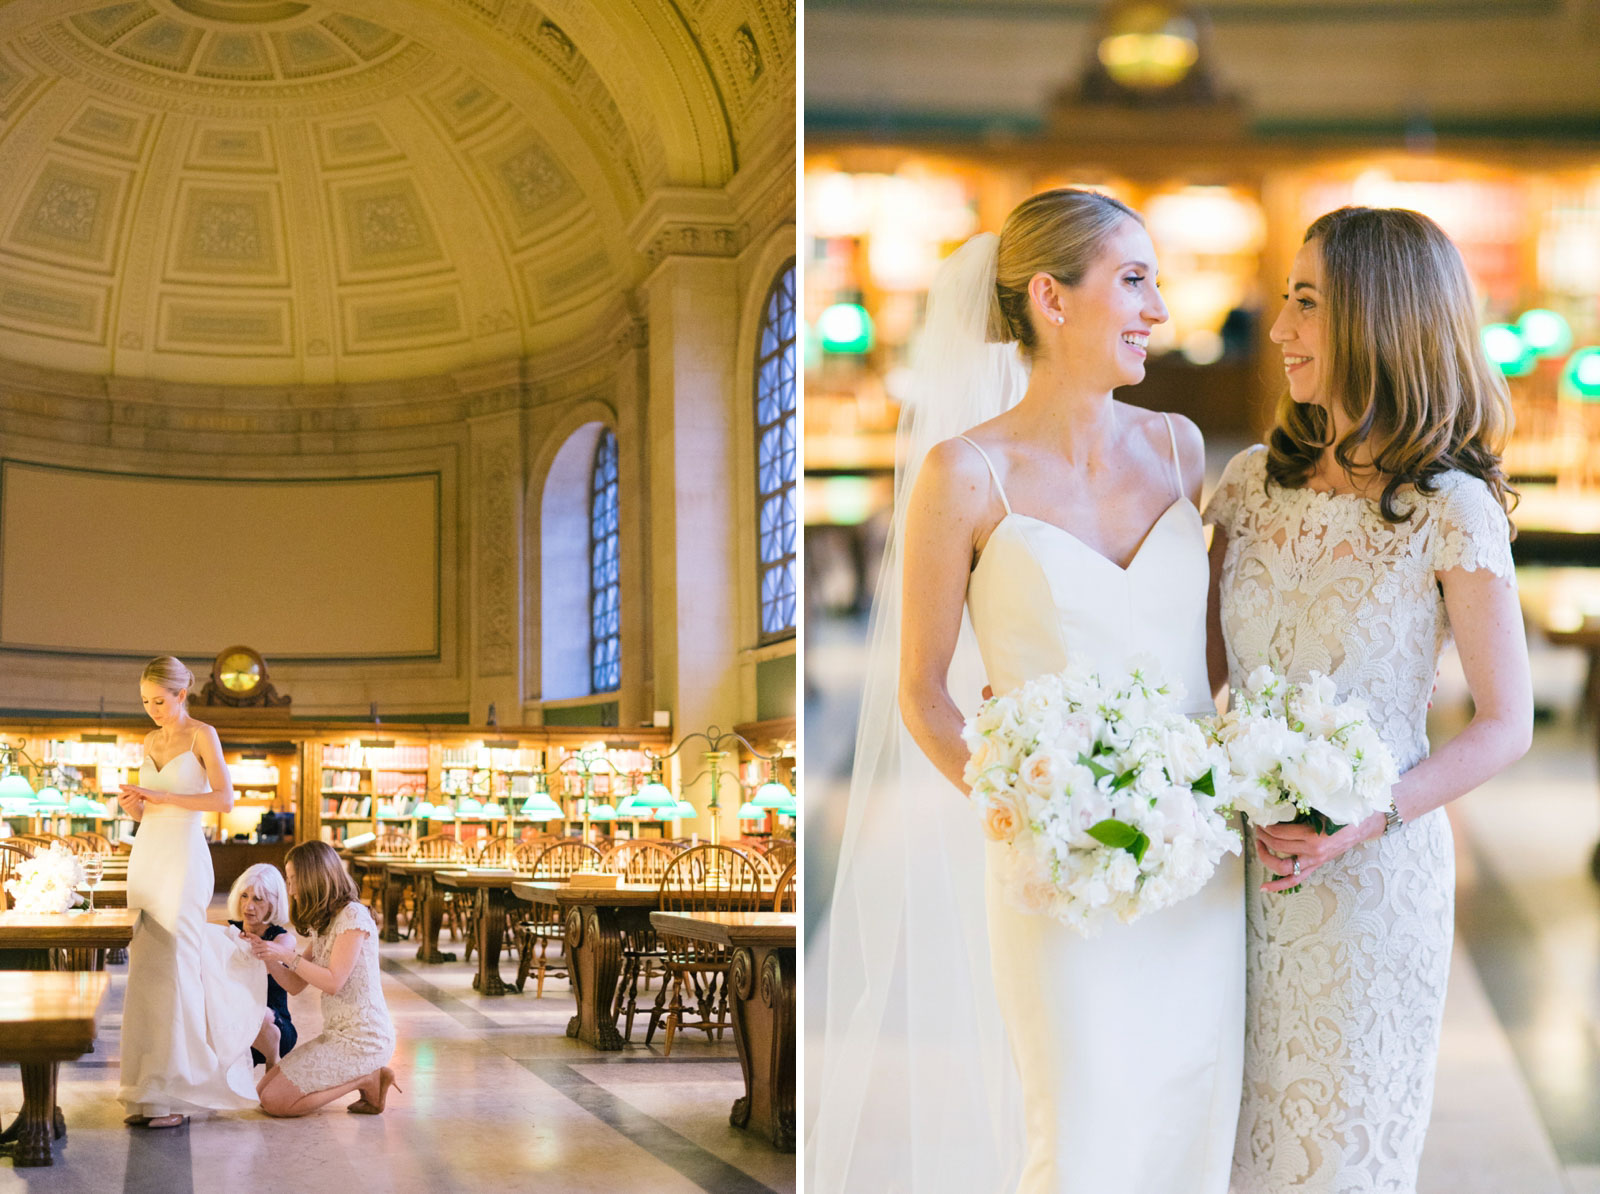 casual bridal party photos at reading room in Boston Public Library with domed ceiling